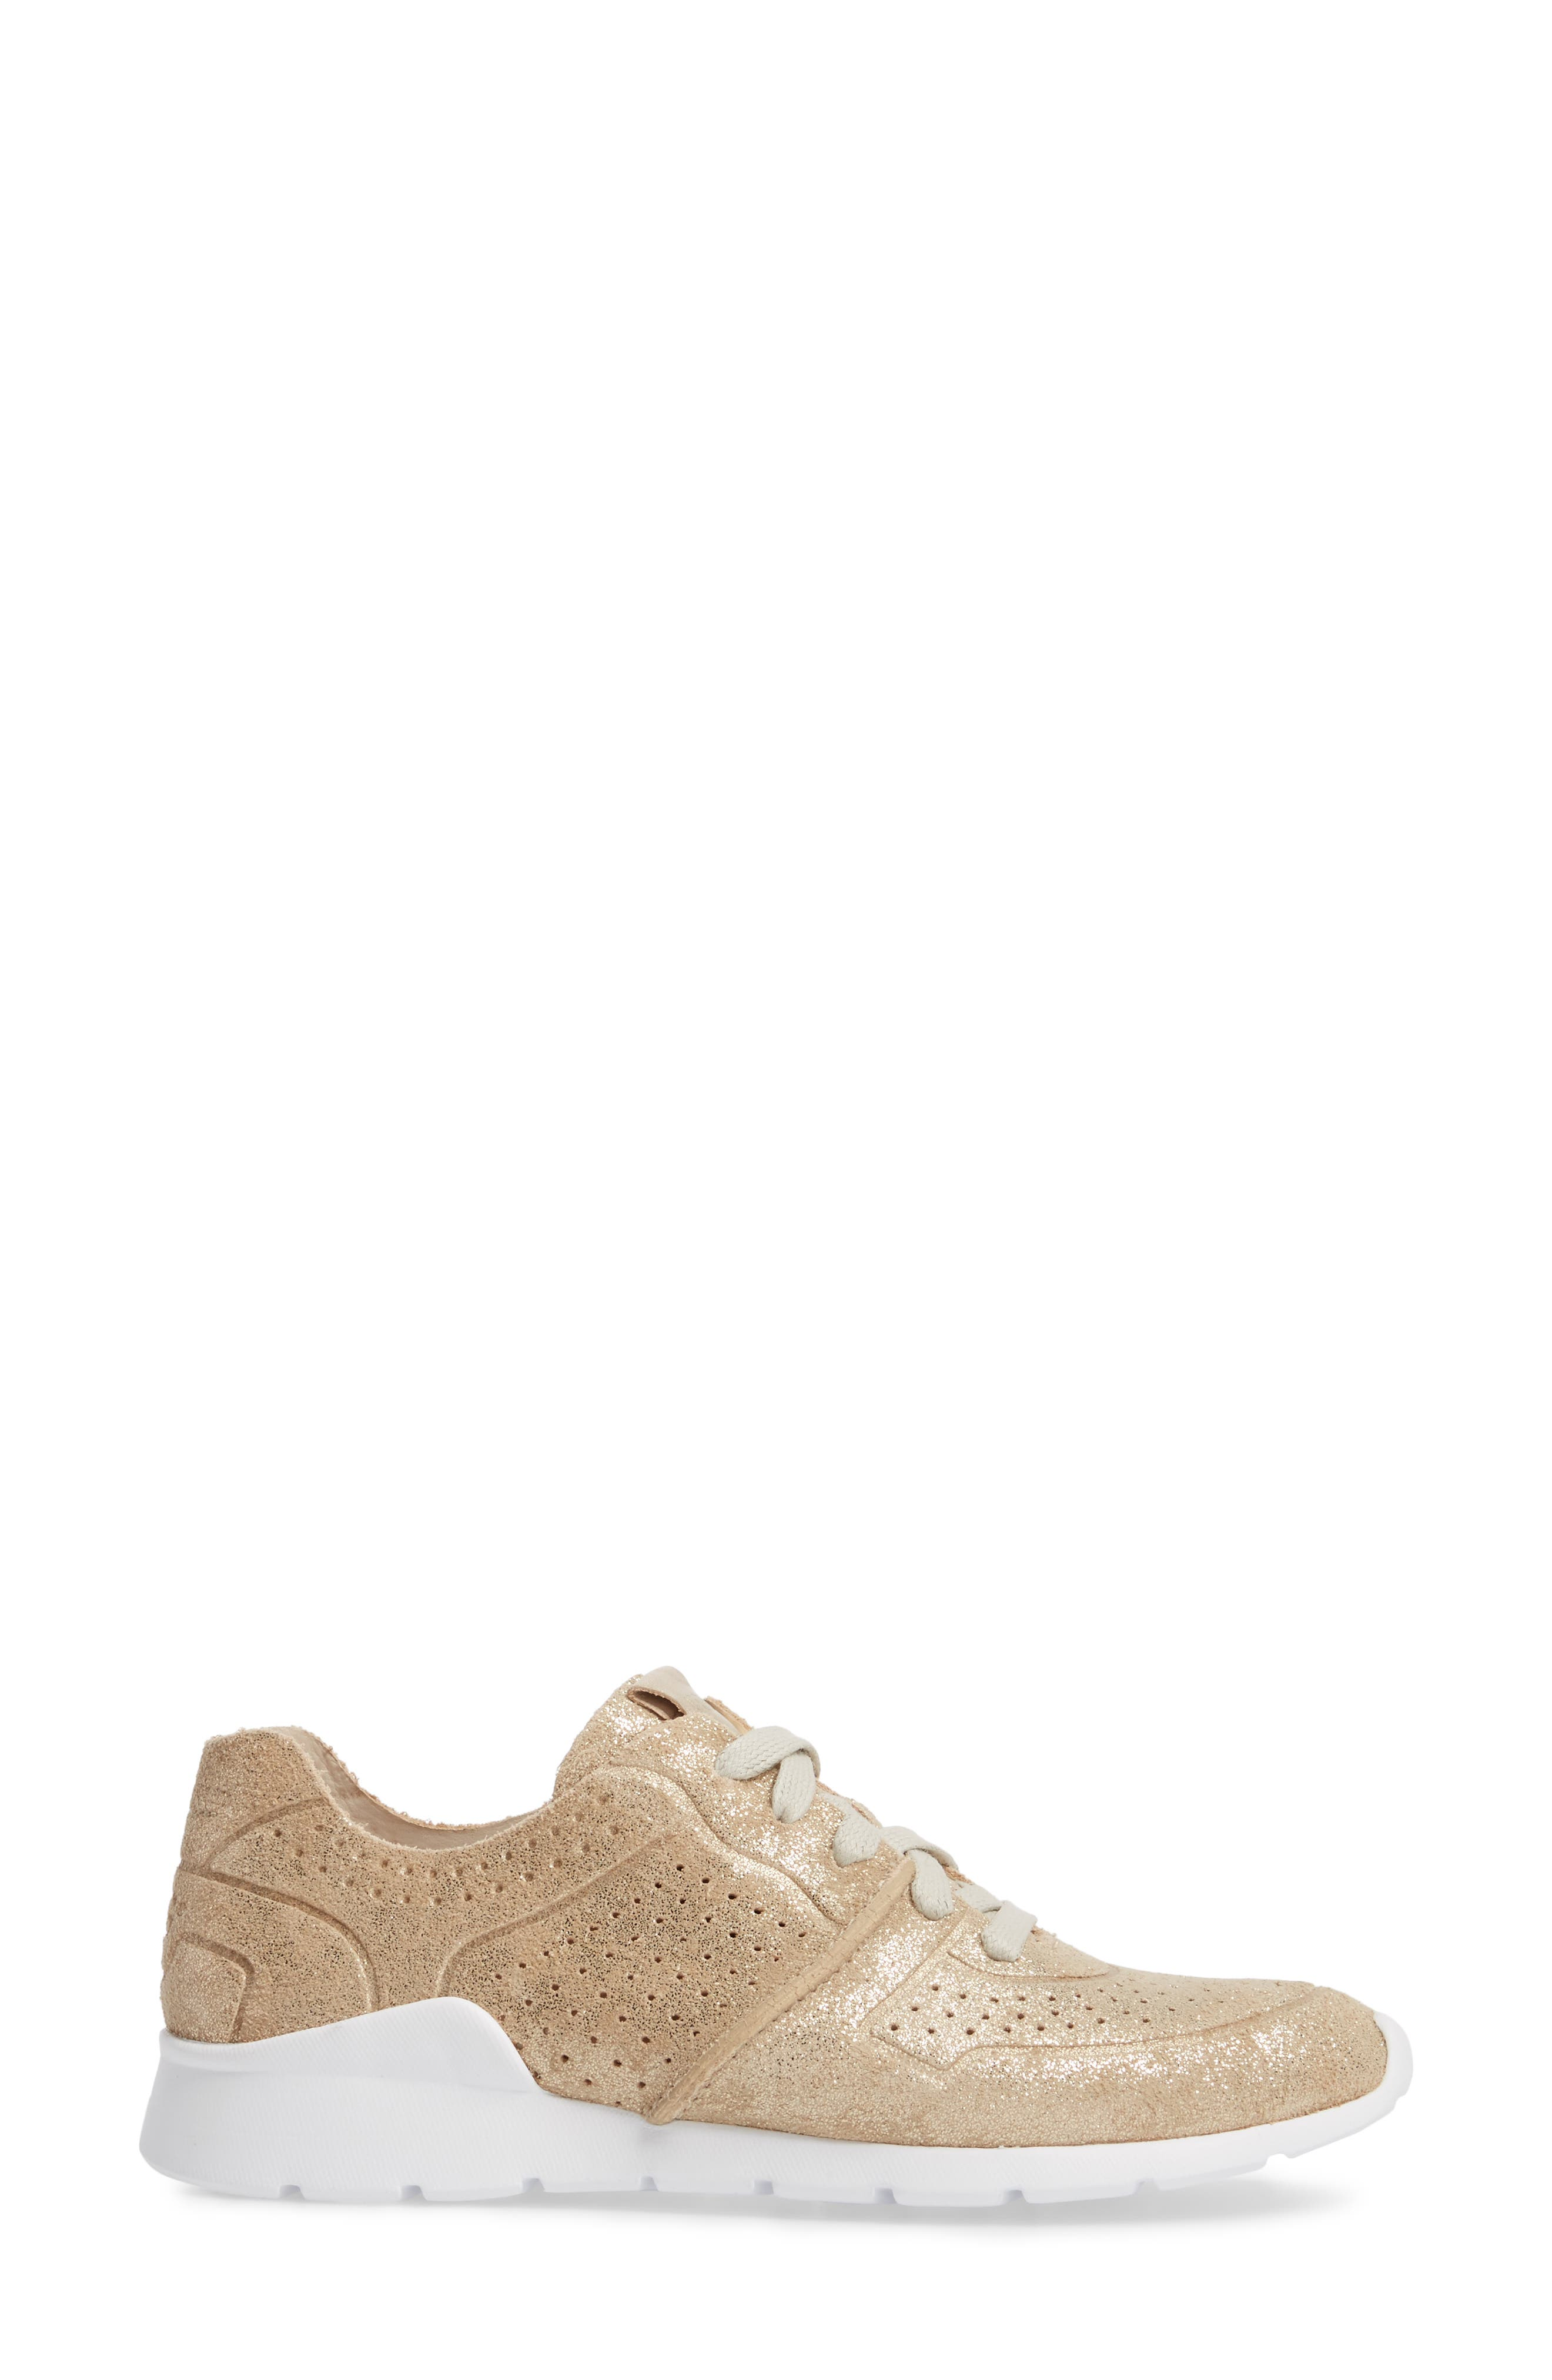 UGG<SUP>®</SUP>, Tye Stardust Sneaker, Alternate thumbnail 3, color, GOLD LEATHER